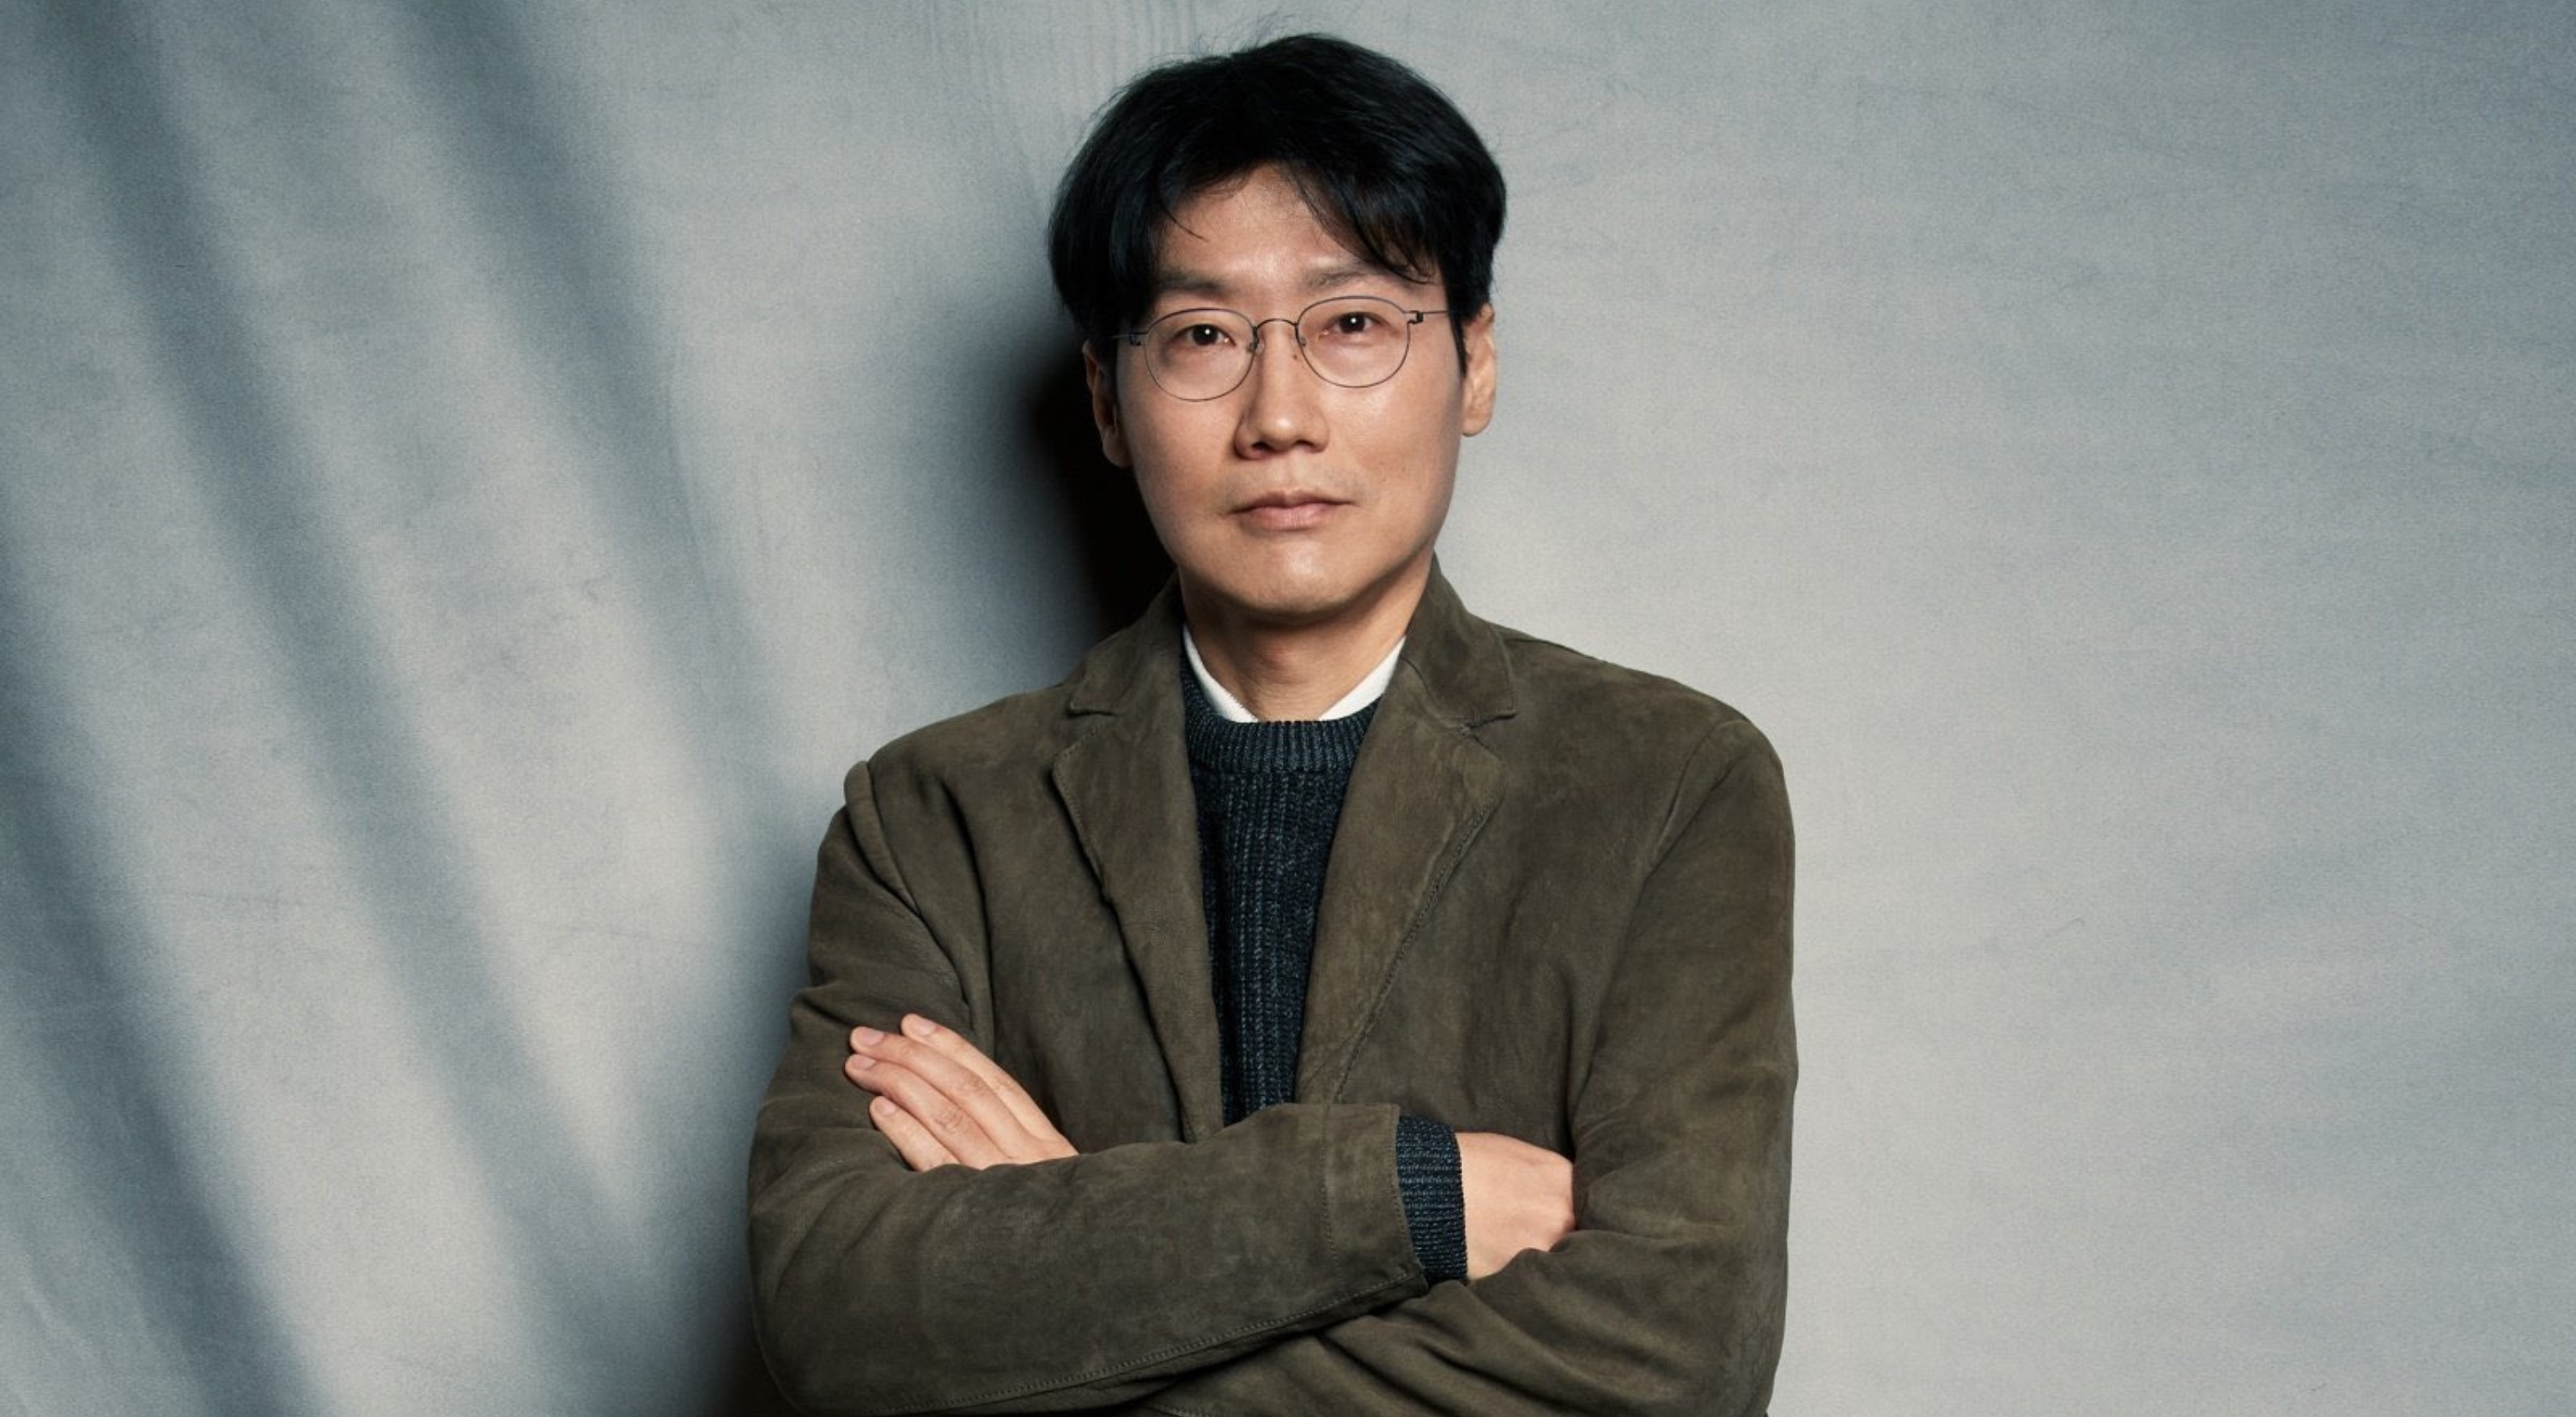 Squid Game': Would Director Hwang Dong-Hyuk Take Part in the Games?